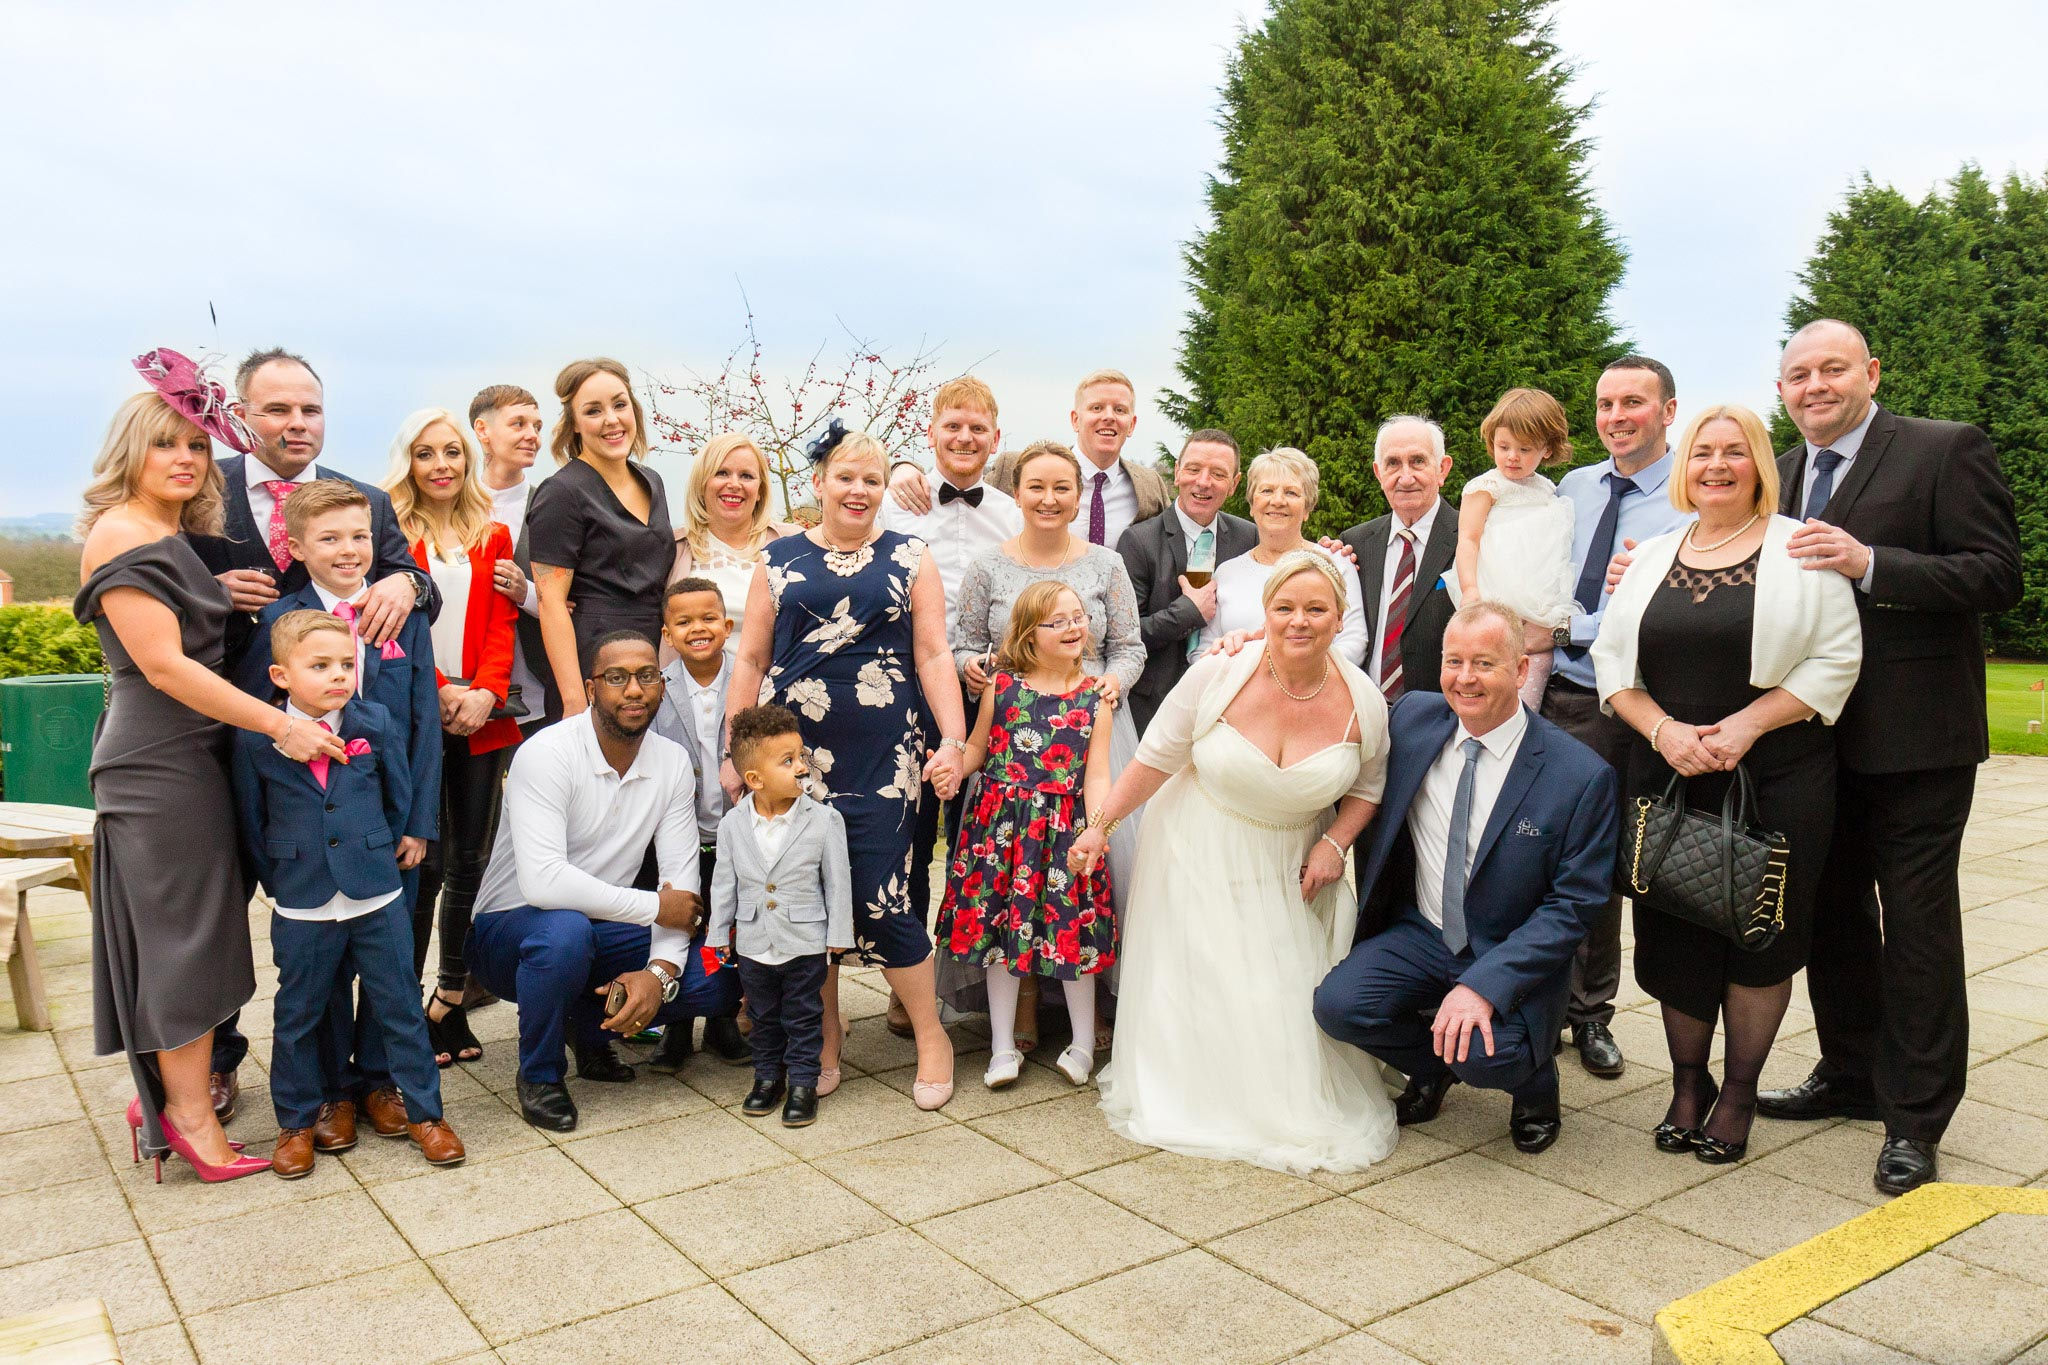 Wedding Group Photos - Woodham Golf Club